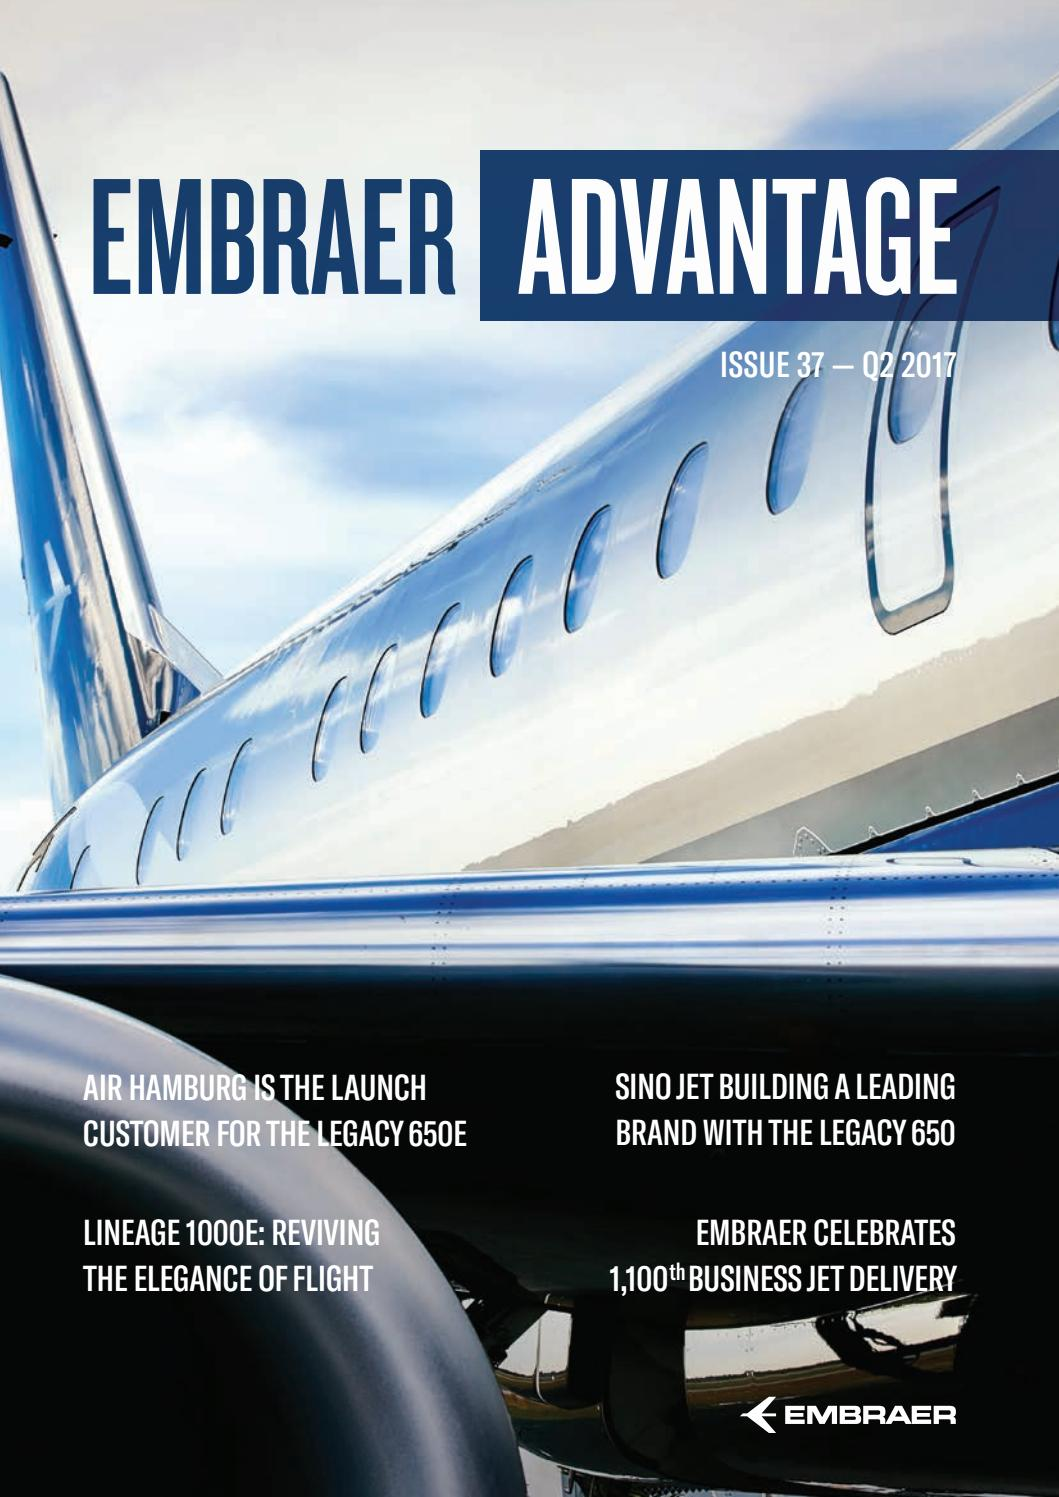 Phenom 300 cockpit phenom executive jet line leaders of innovation - Embraer Advantage 37 Edition Q2 2017 By Embraer Executive Jets Issuu